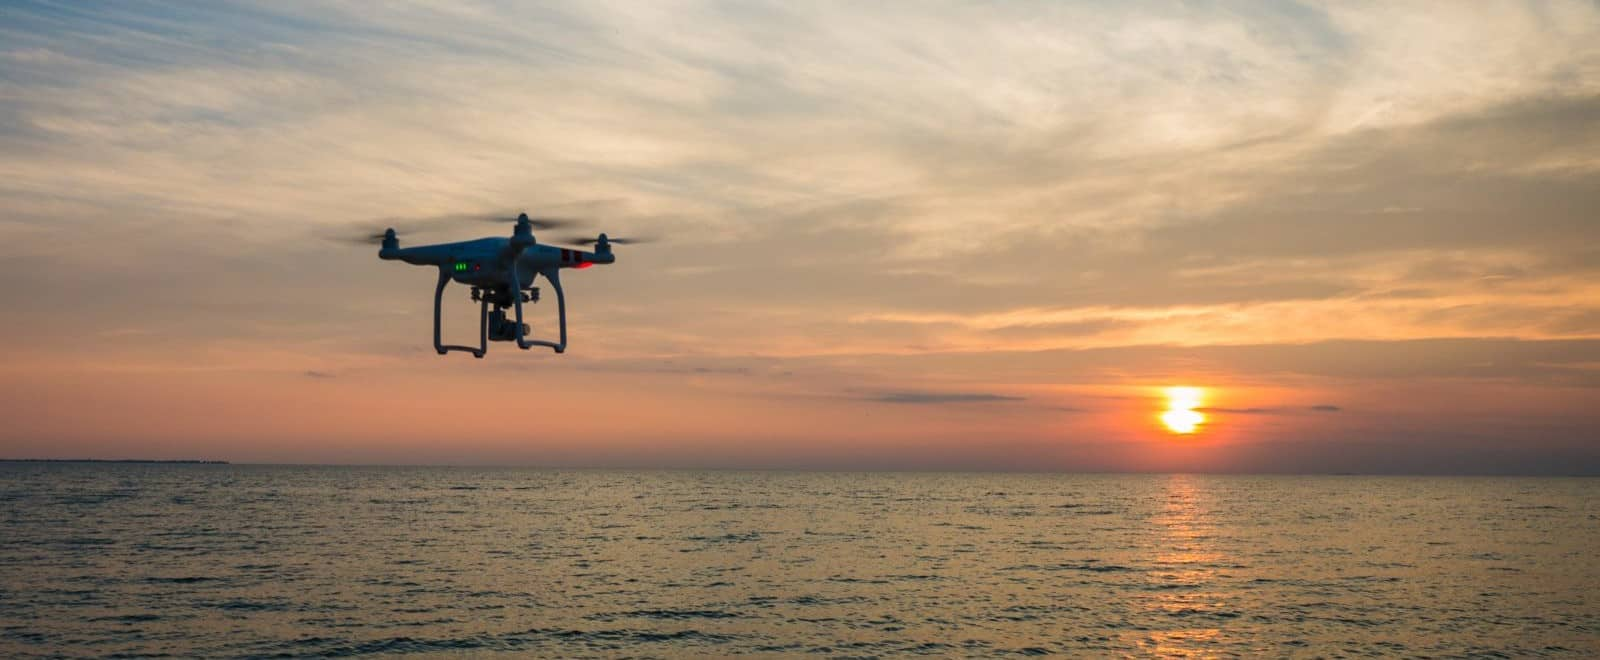 What really happened to drones in 2017?